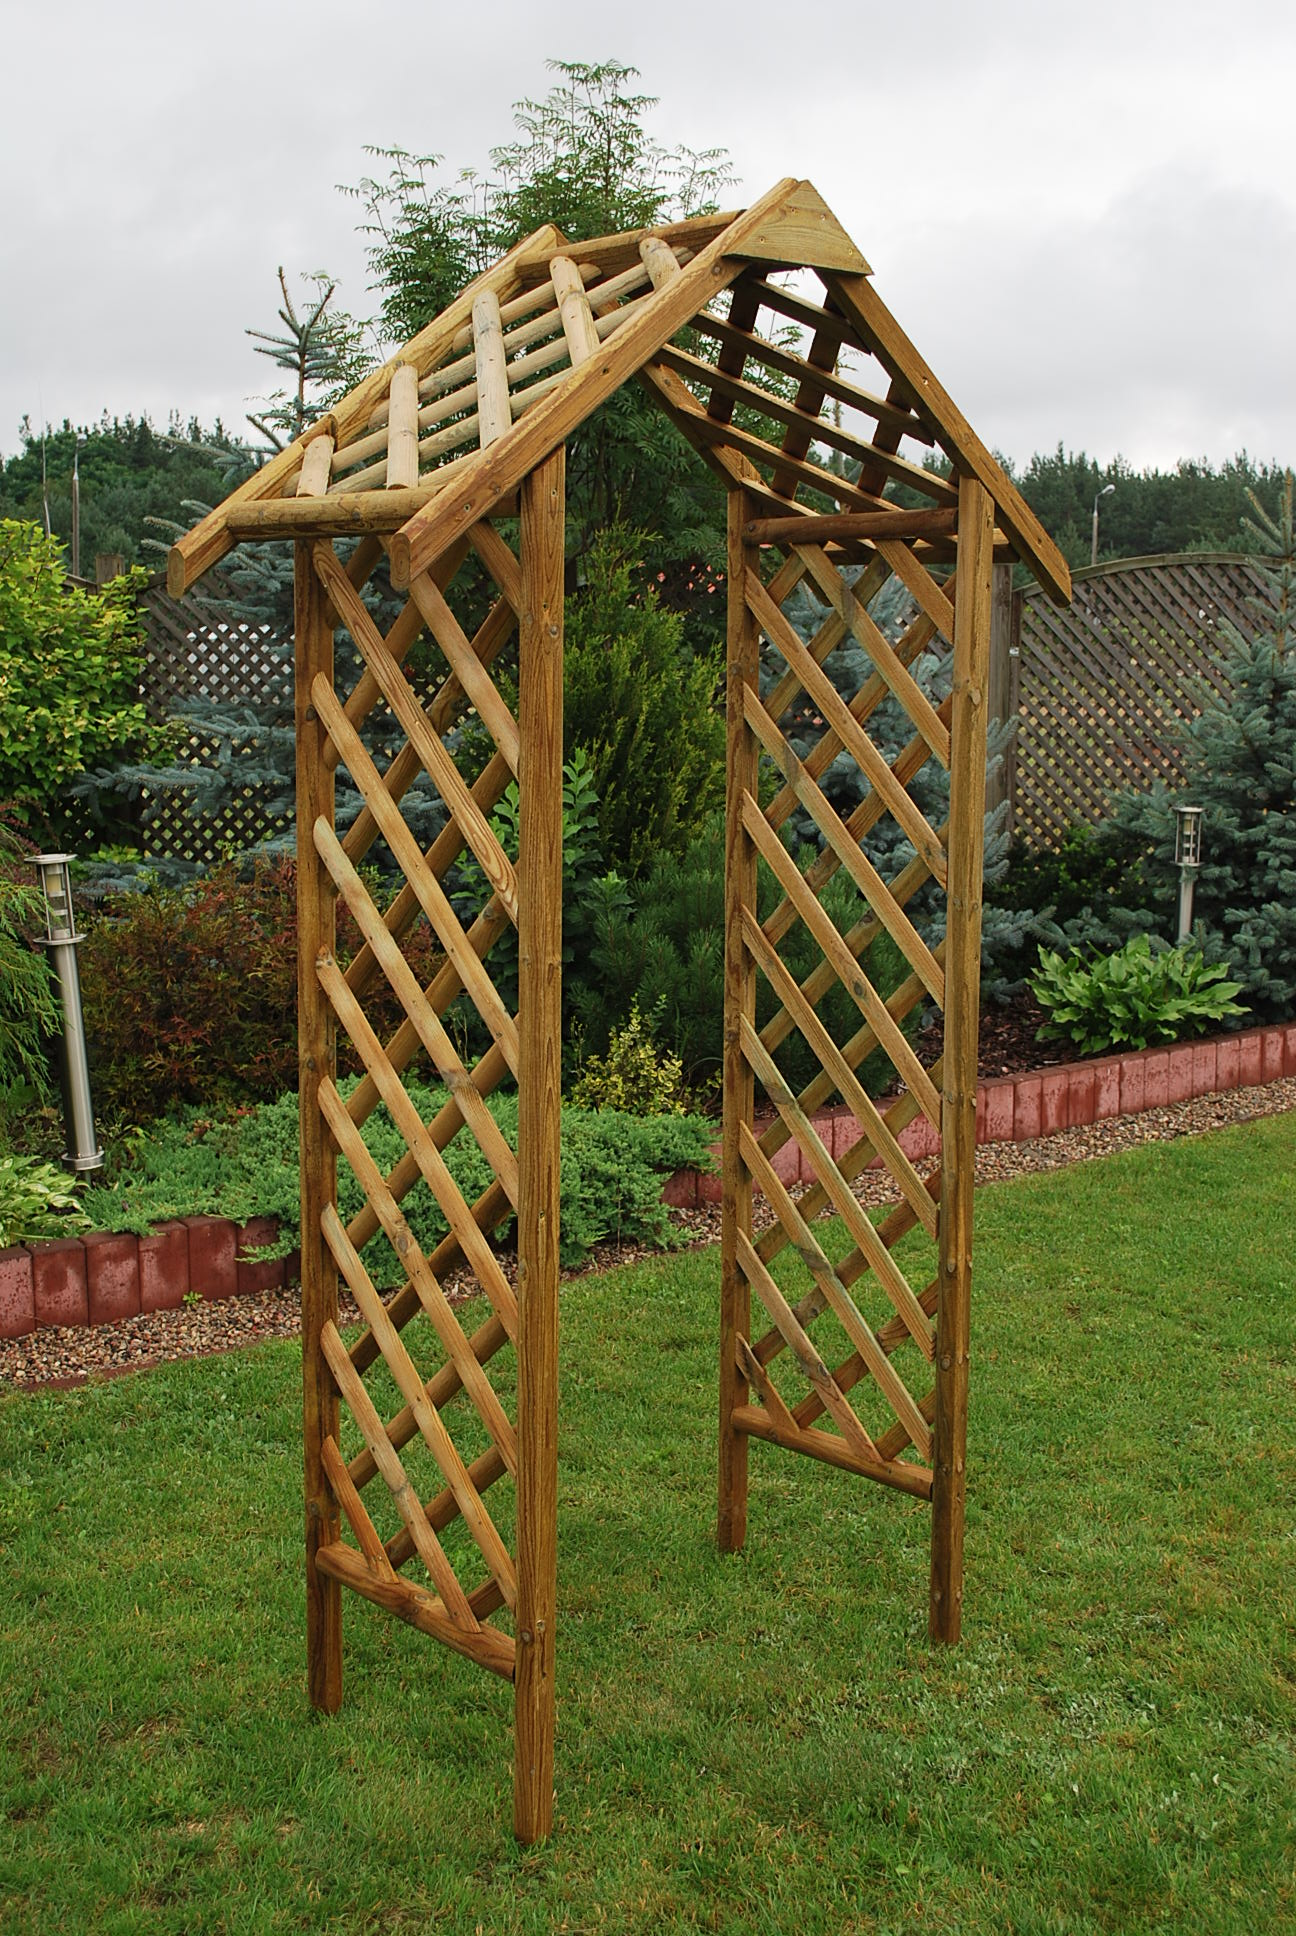 12.EXETER RUSTIC ARCH